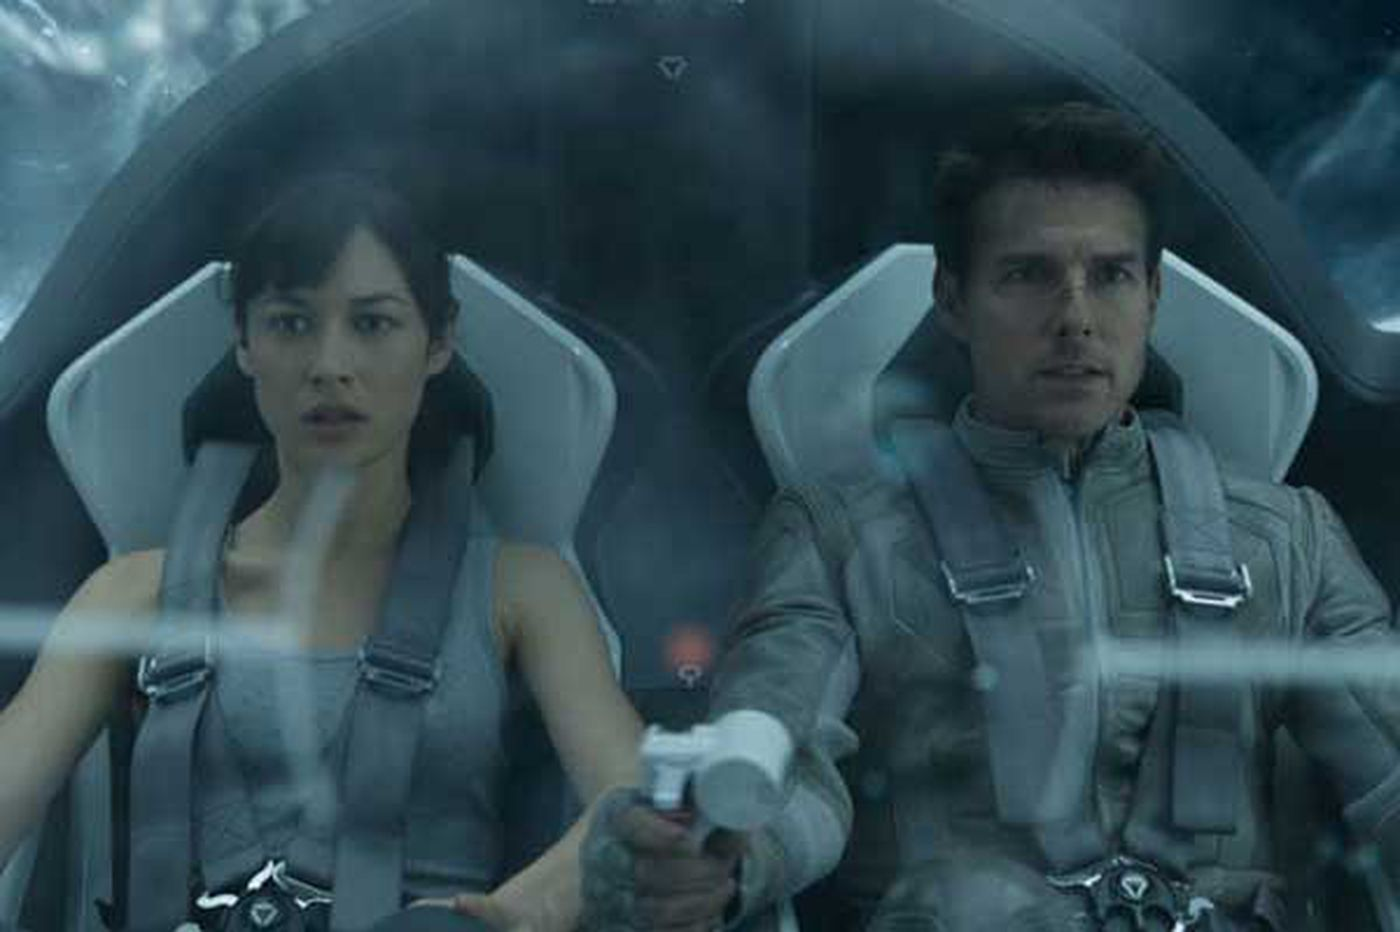 'Oblivion': Handsome Cruise to nowhere